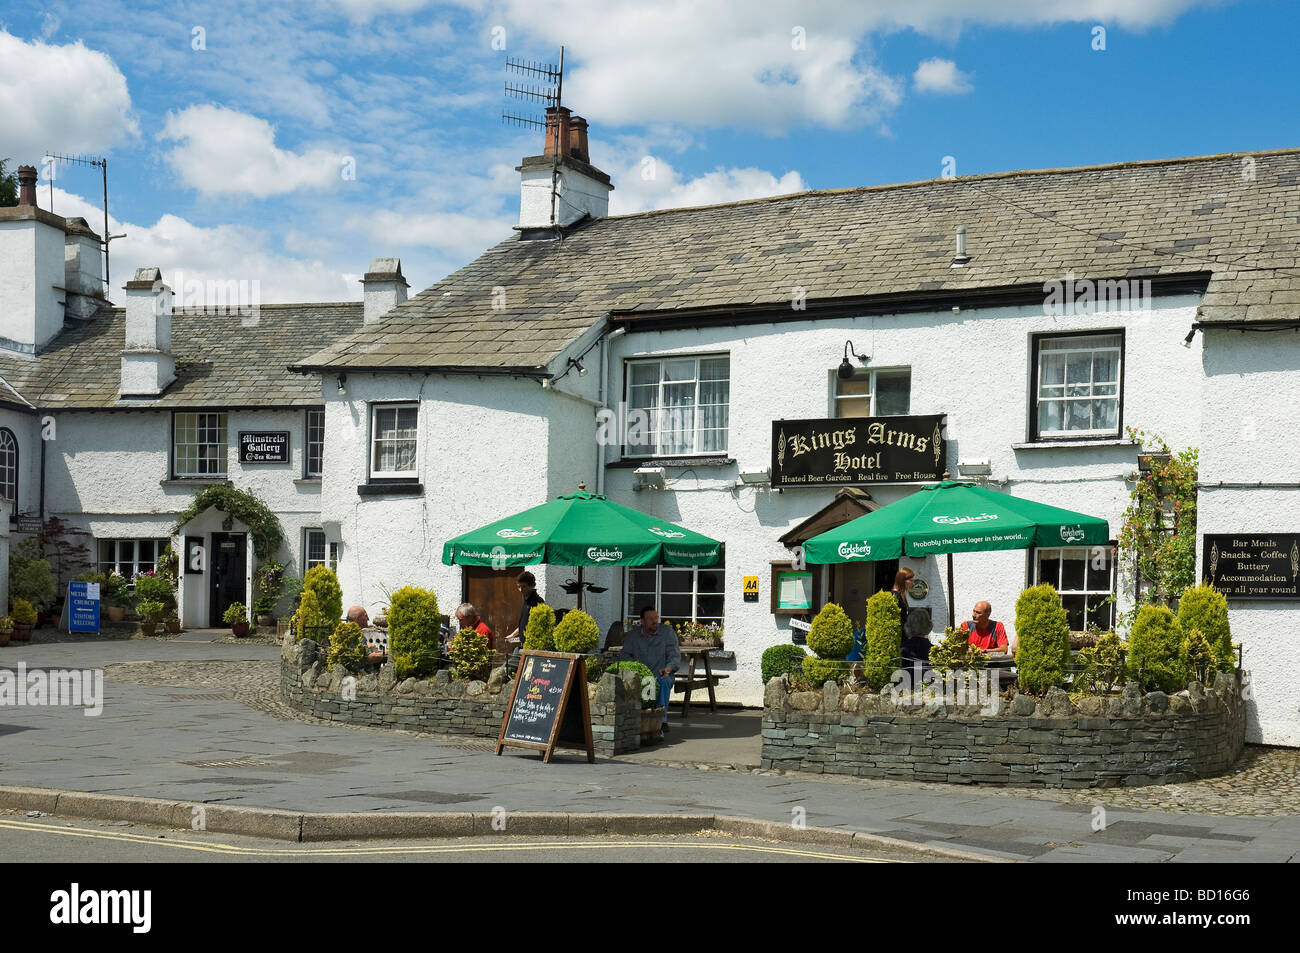 The Kings Head Hotel Hawkshead Cumbria England UK United Kingdom GB Great Britain - Stock Image